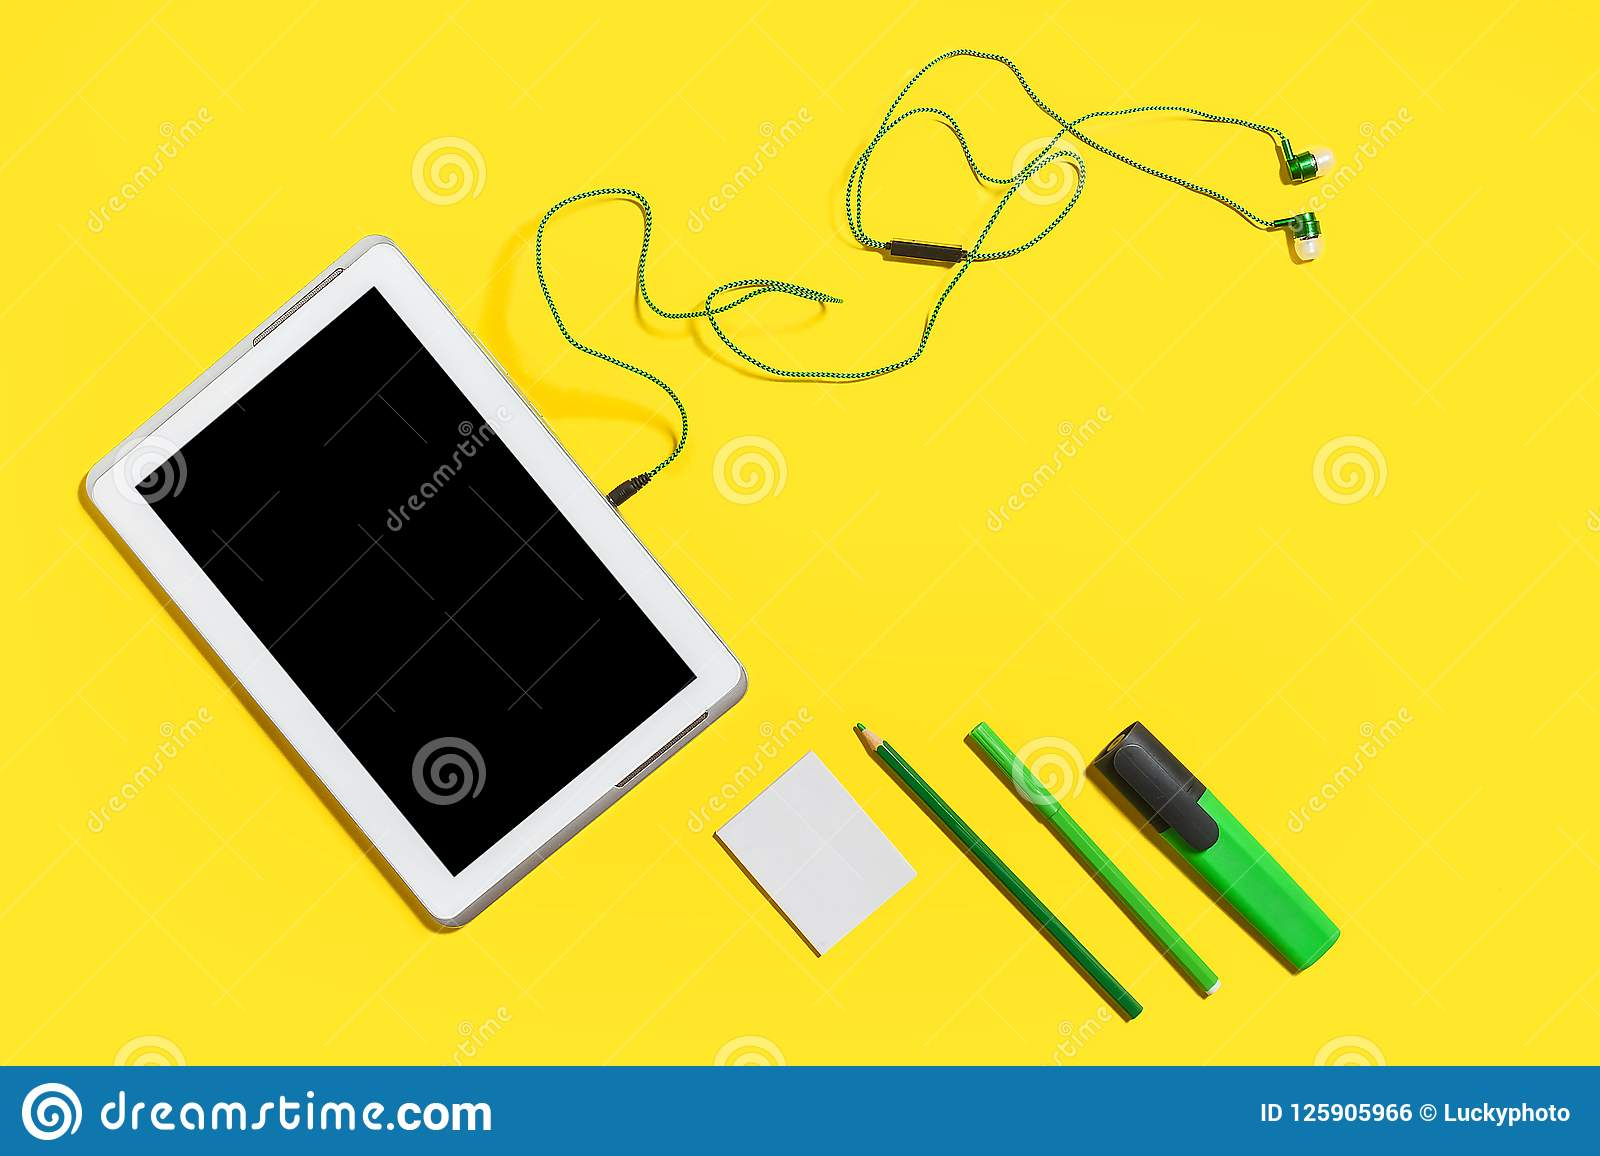 Educational accessories on a yellow surface